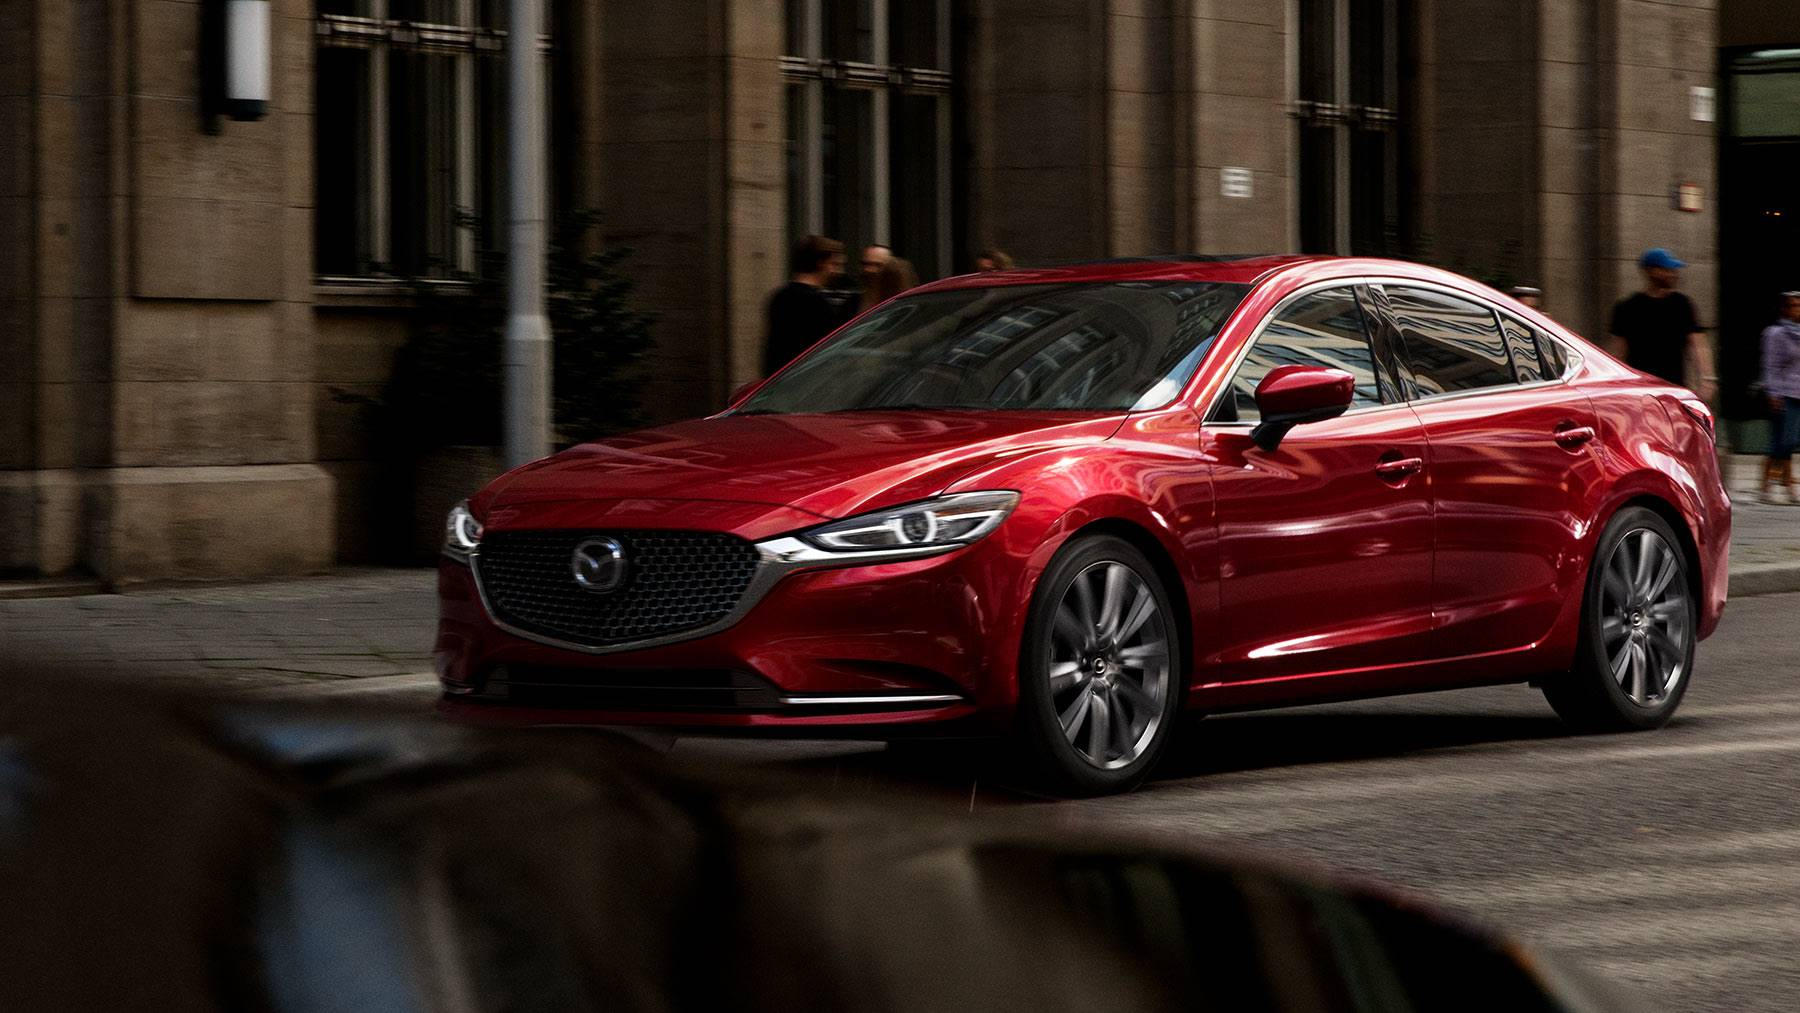 2018 Mazda6 for Sale near Sacramento, CA